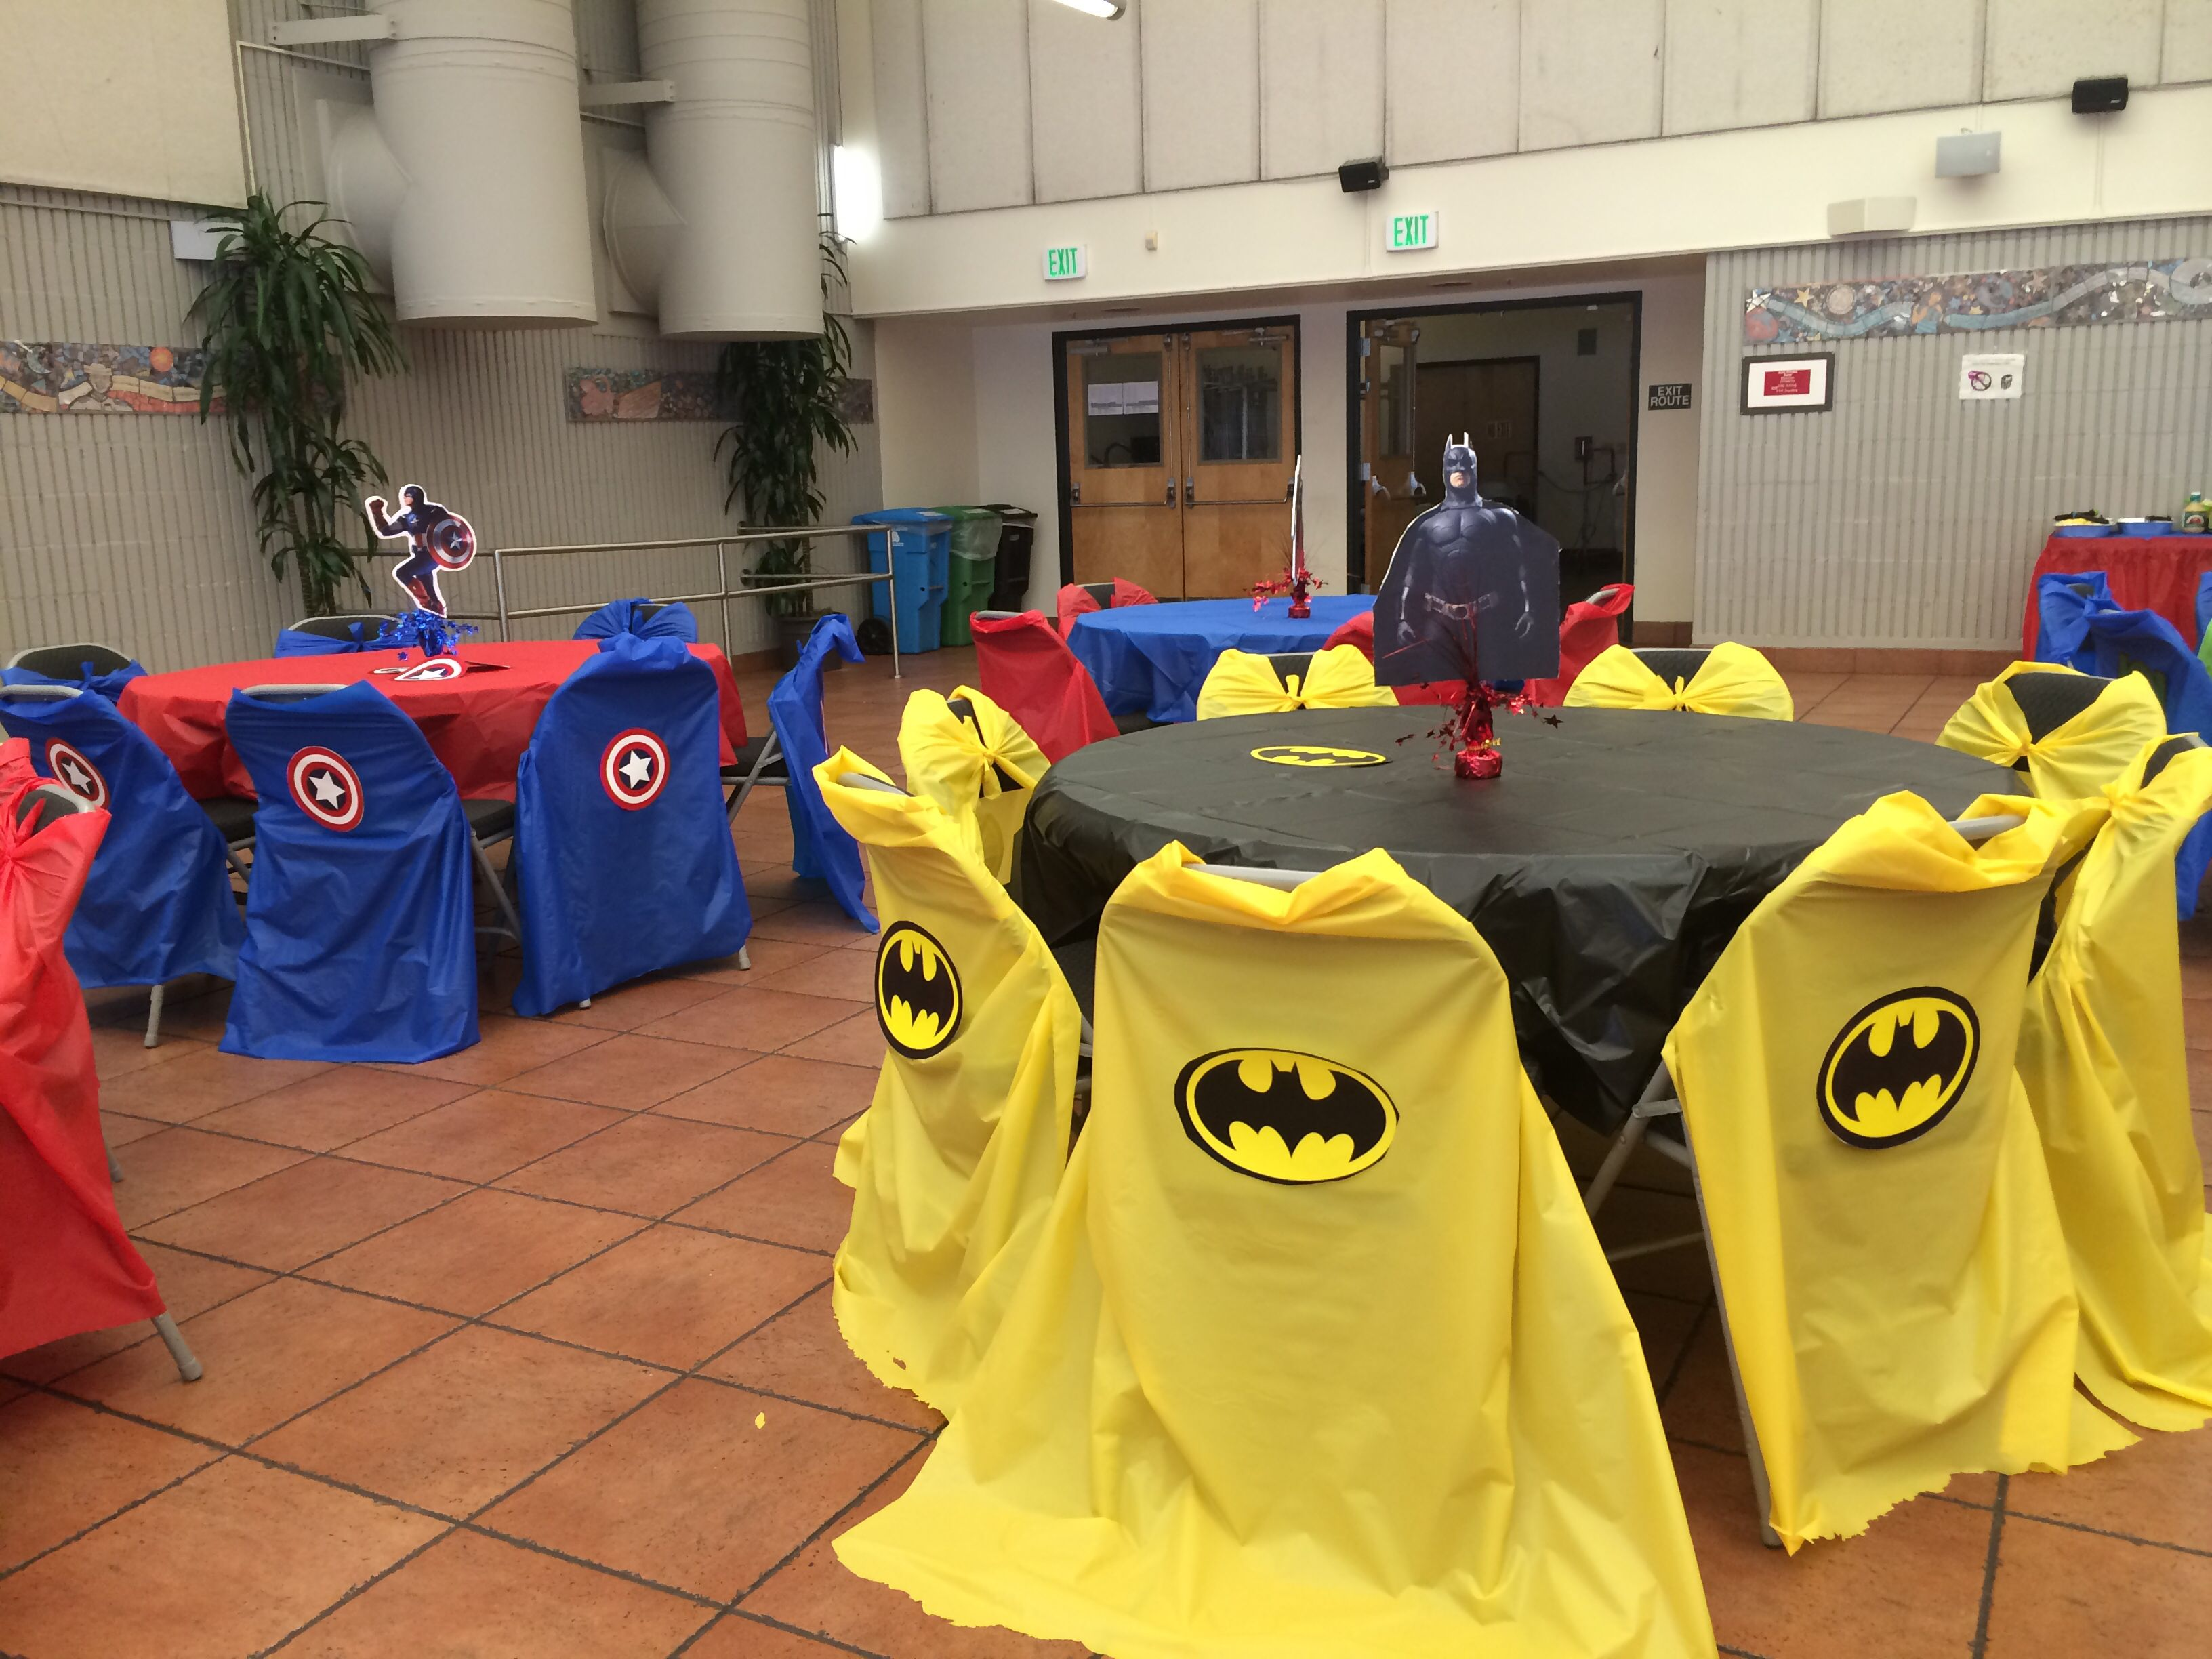 Bat Man & Captain America. I used plastic covers and made capes for the chair covers